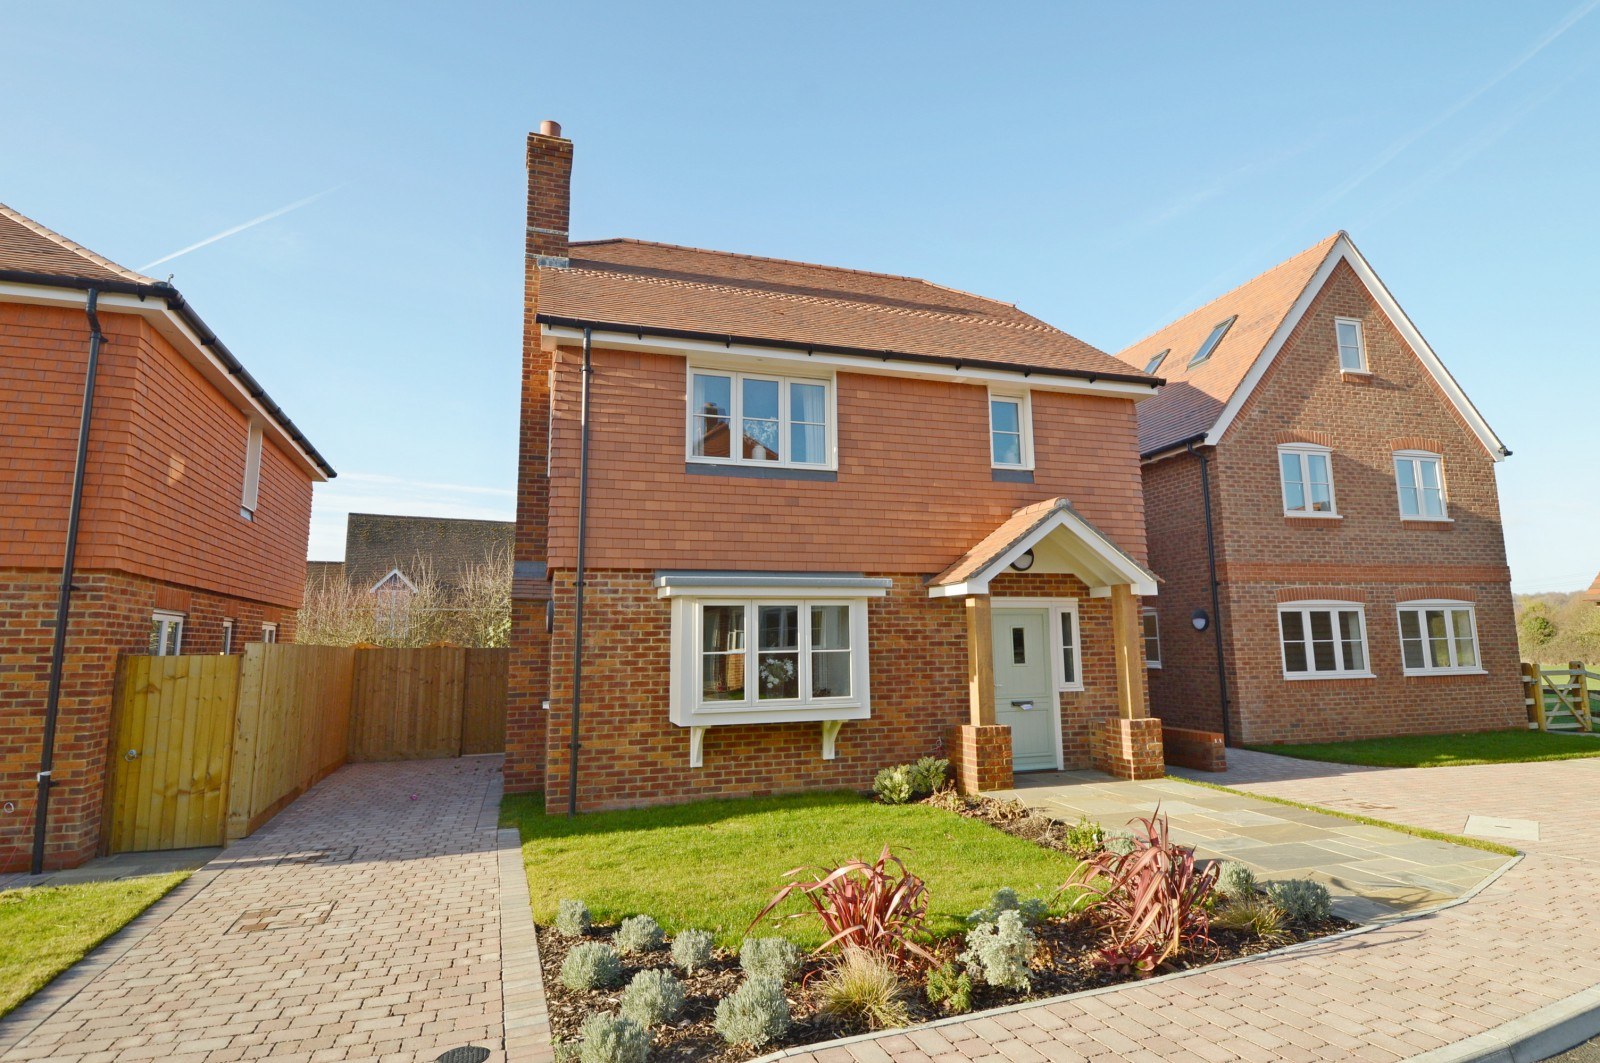 Front Property to let in Ropley (Main)